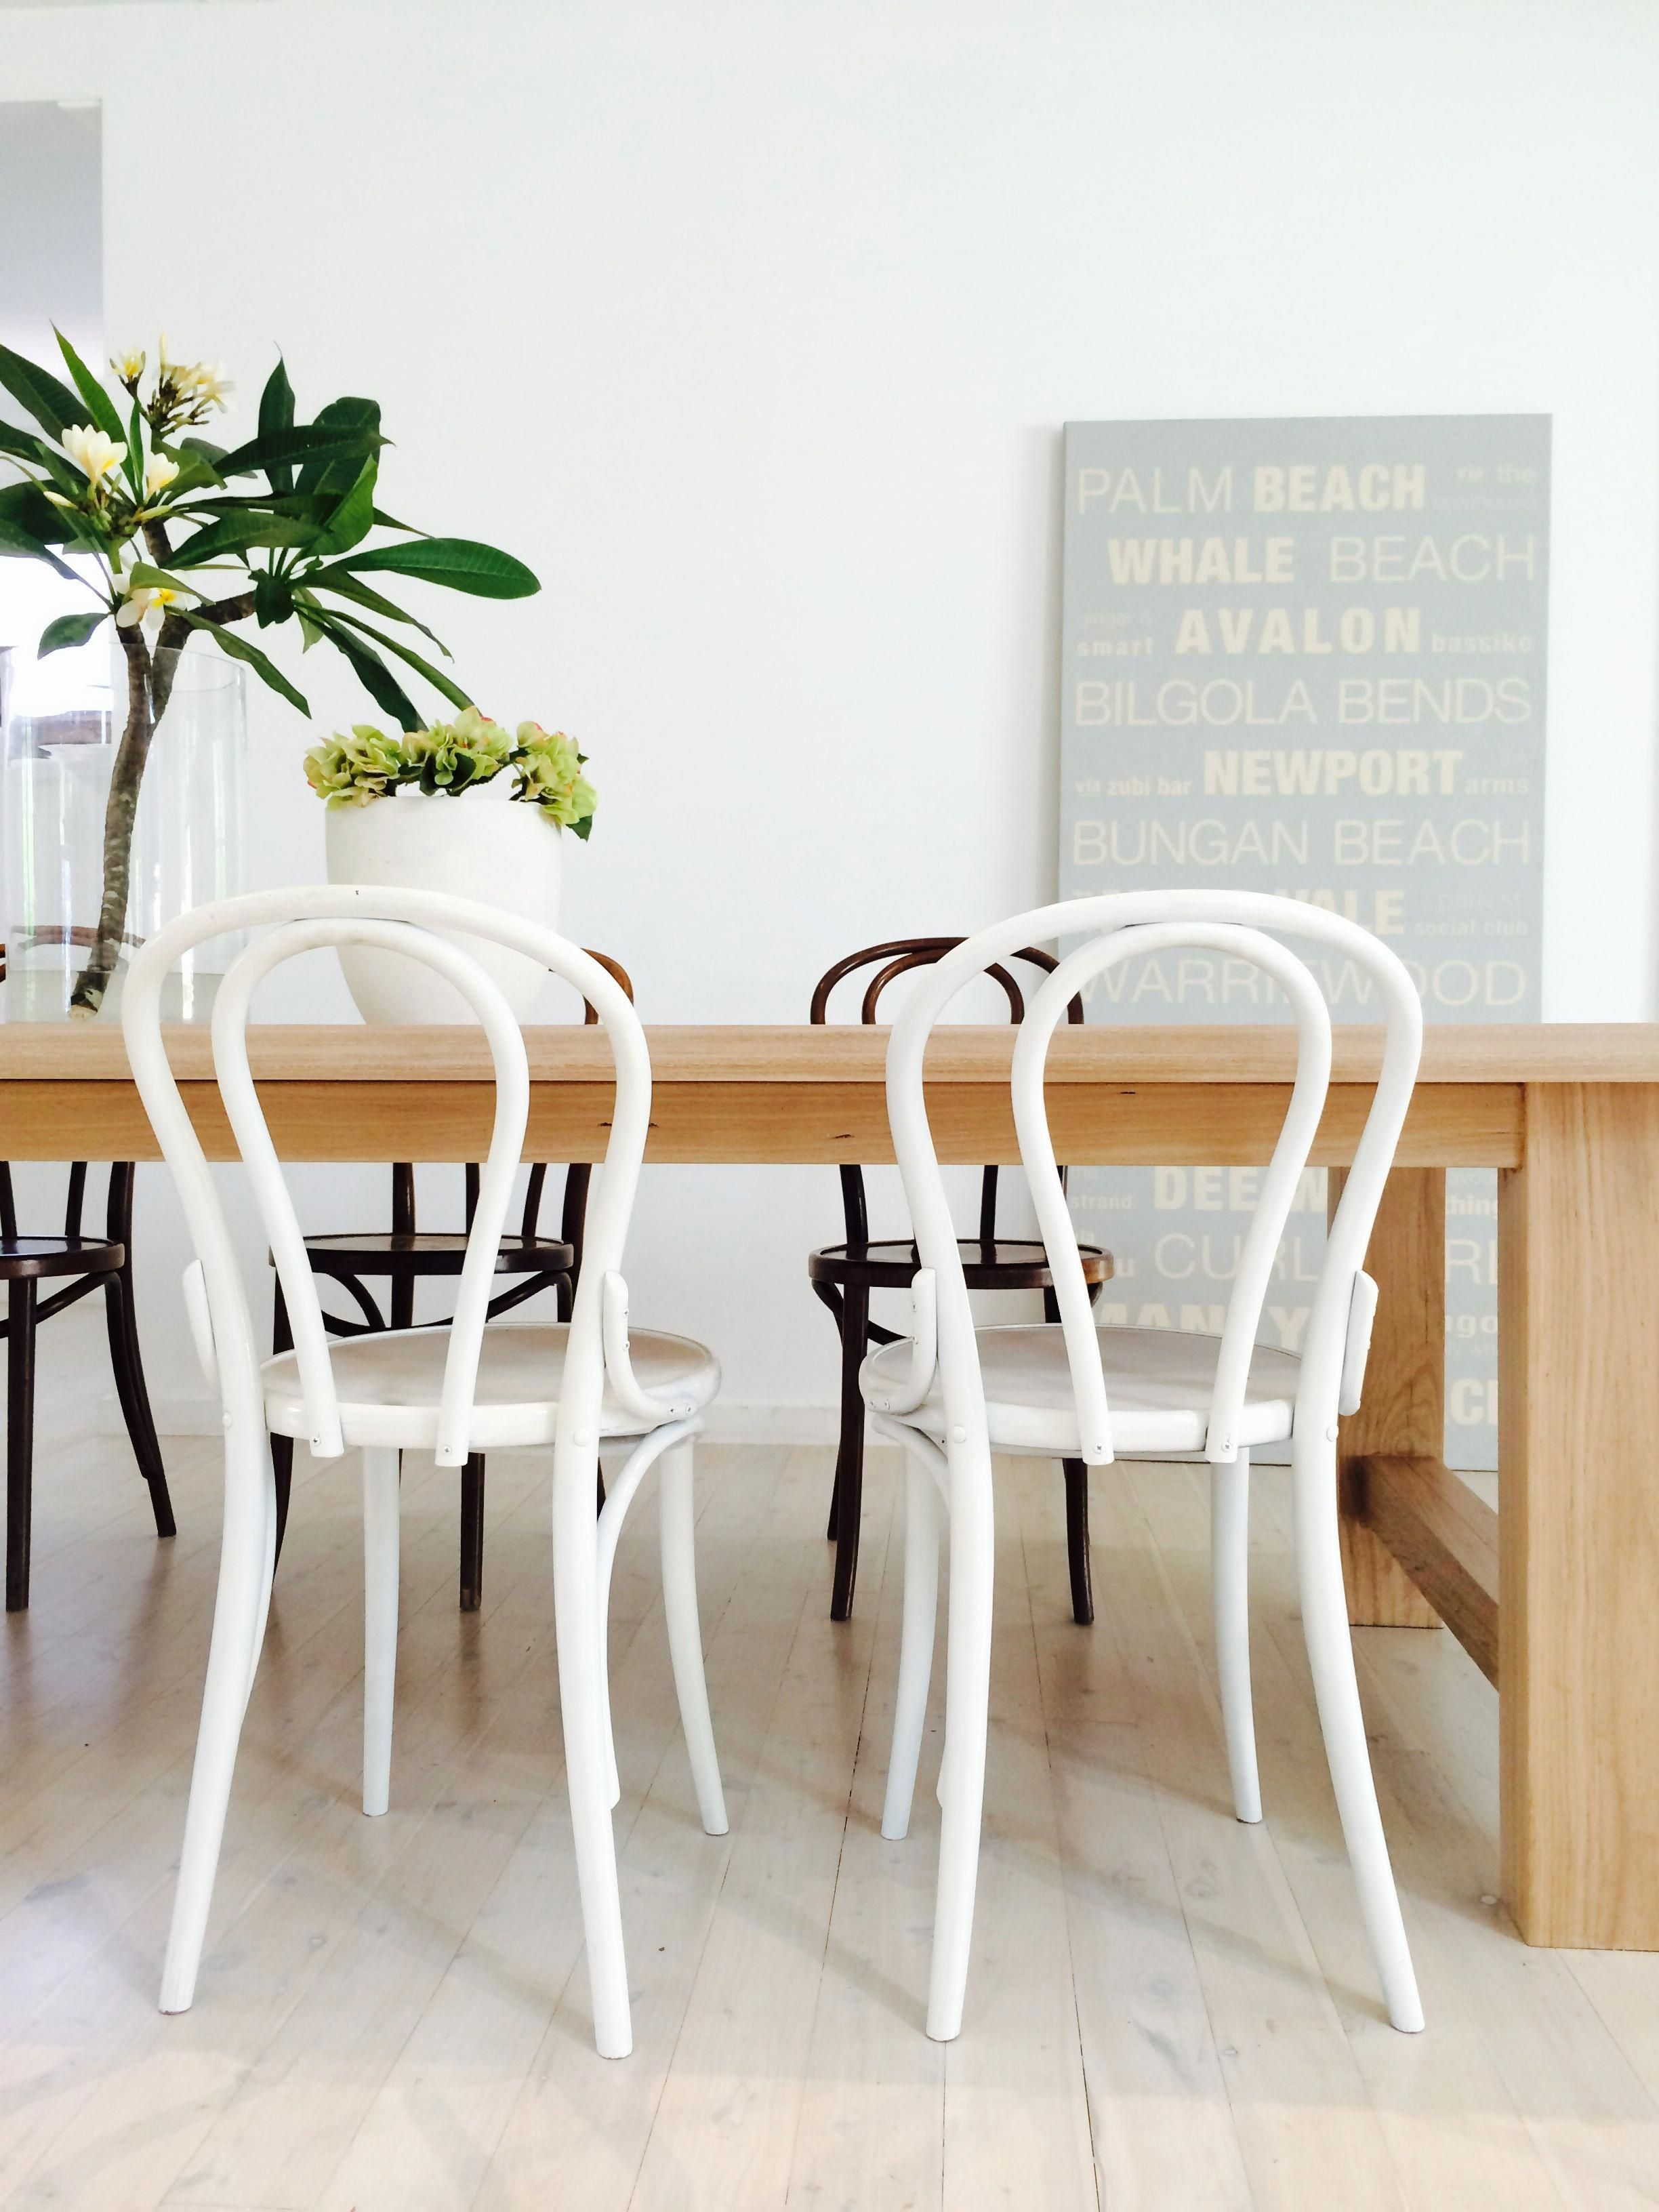 White Bentwood Chairs At Our Lime Washed Hardwood Dining Table Compositeadirondackchairs Dinning Tables And Chairs Composite Adirondack Chairs Bentwood Chairs